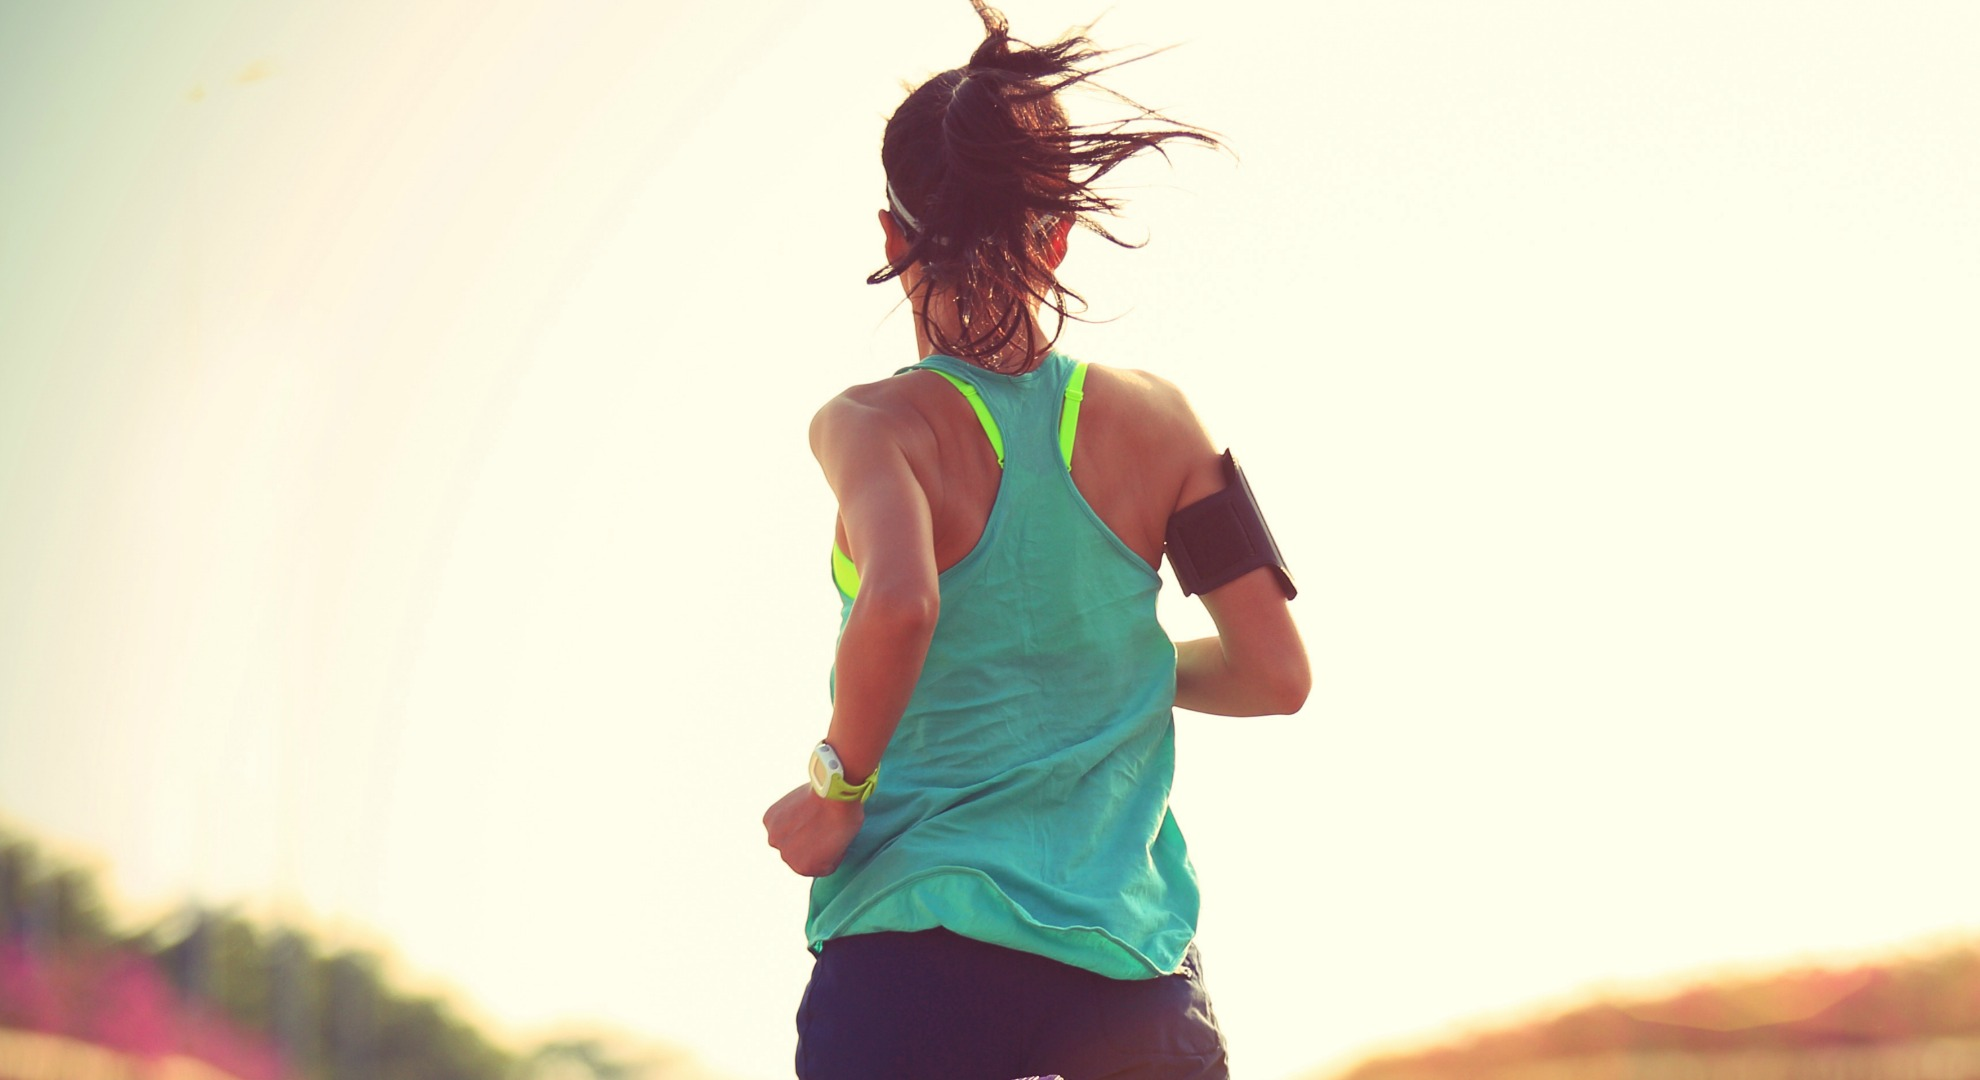 10 Signs You're Doing Too Much Cardio